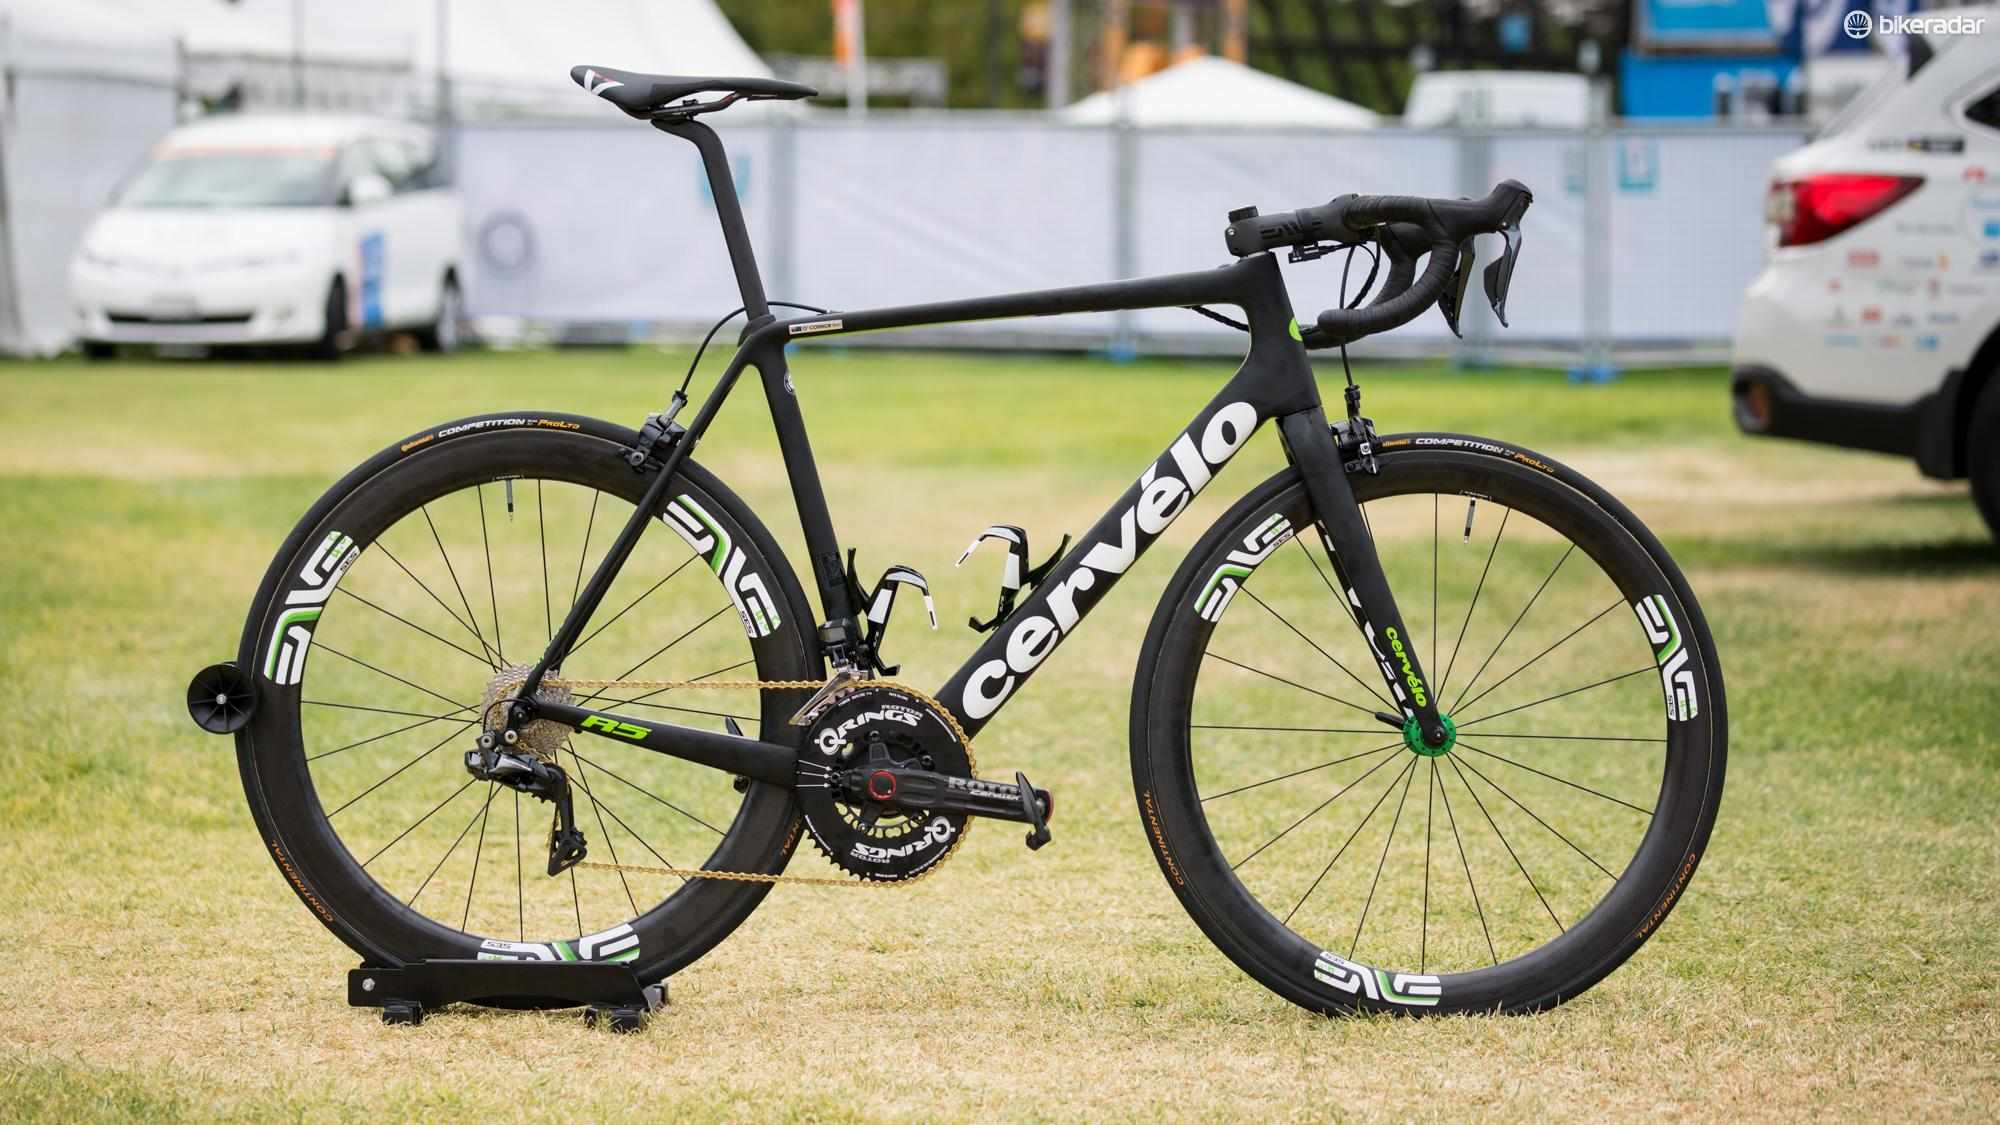 Ben O'Connor's Cervelo R5 race bike at the 2018 Tour Down Under